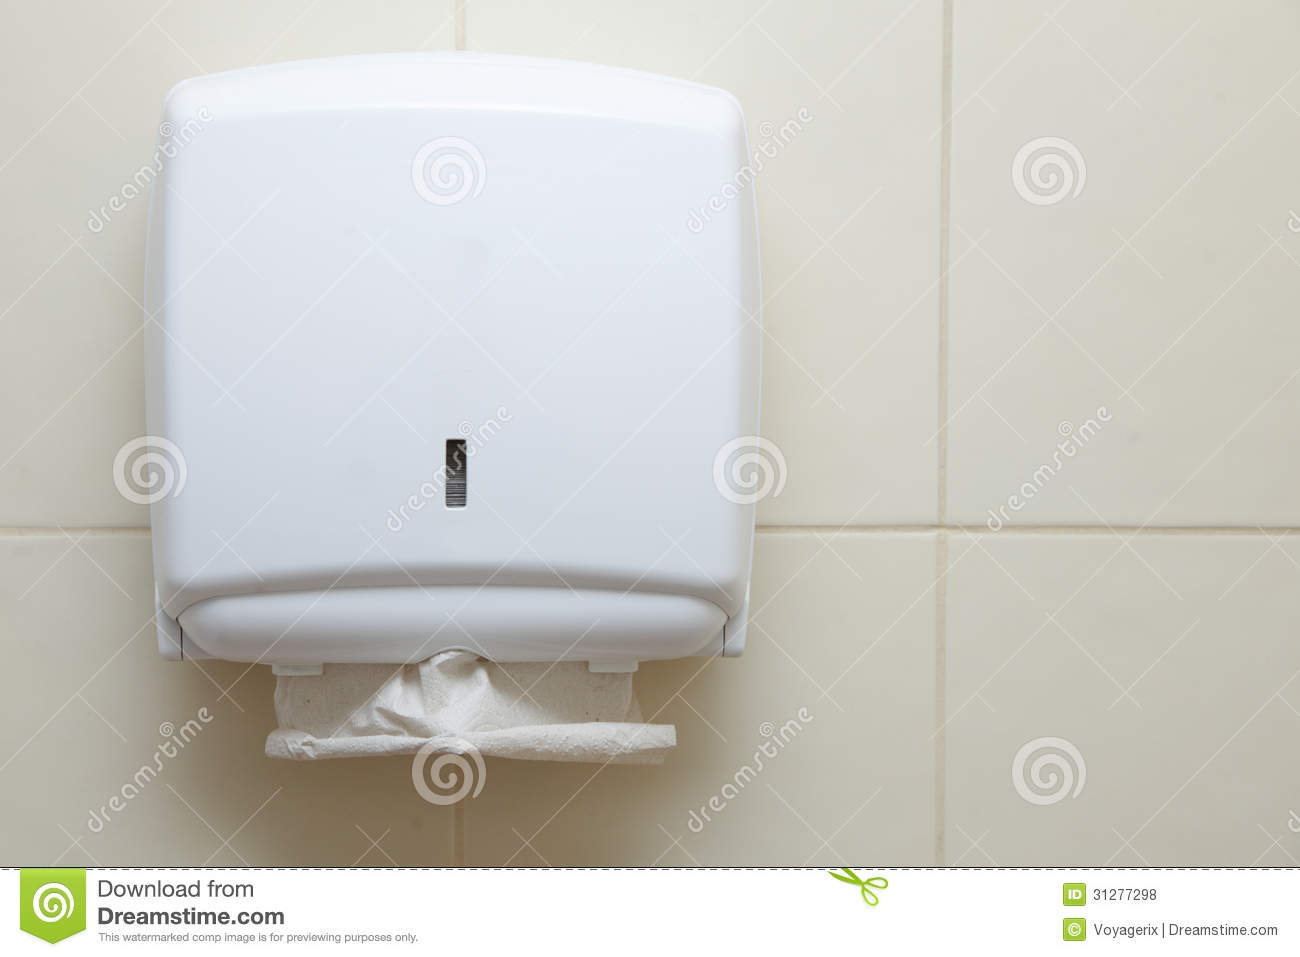 Paper Towel Dispenser In The Bathroom Royalty Free Stock Photos Image 31277298